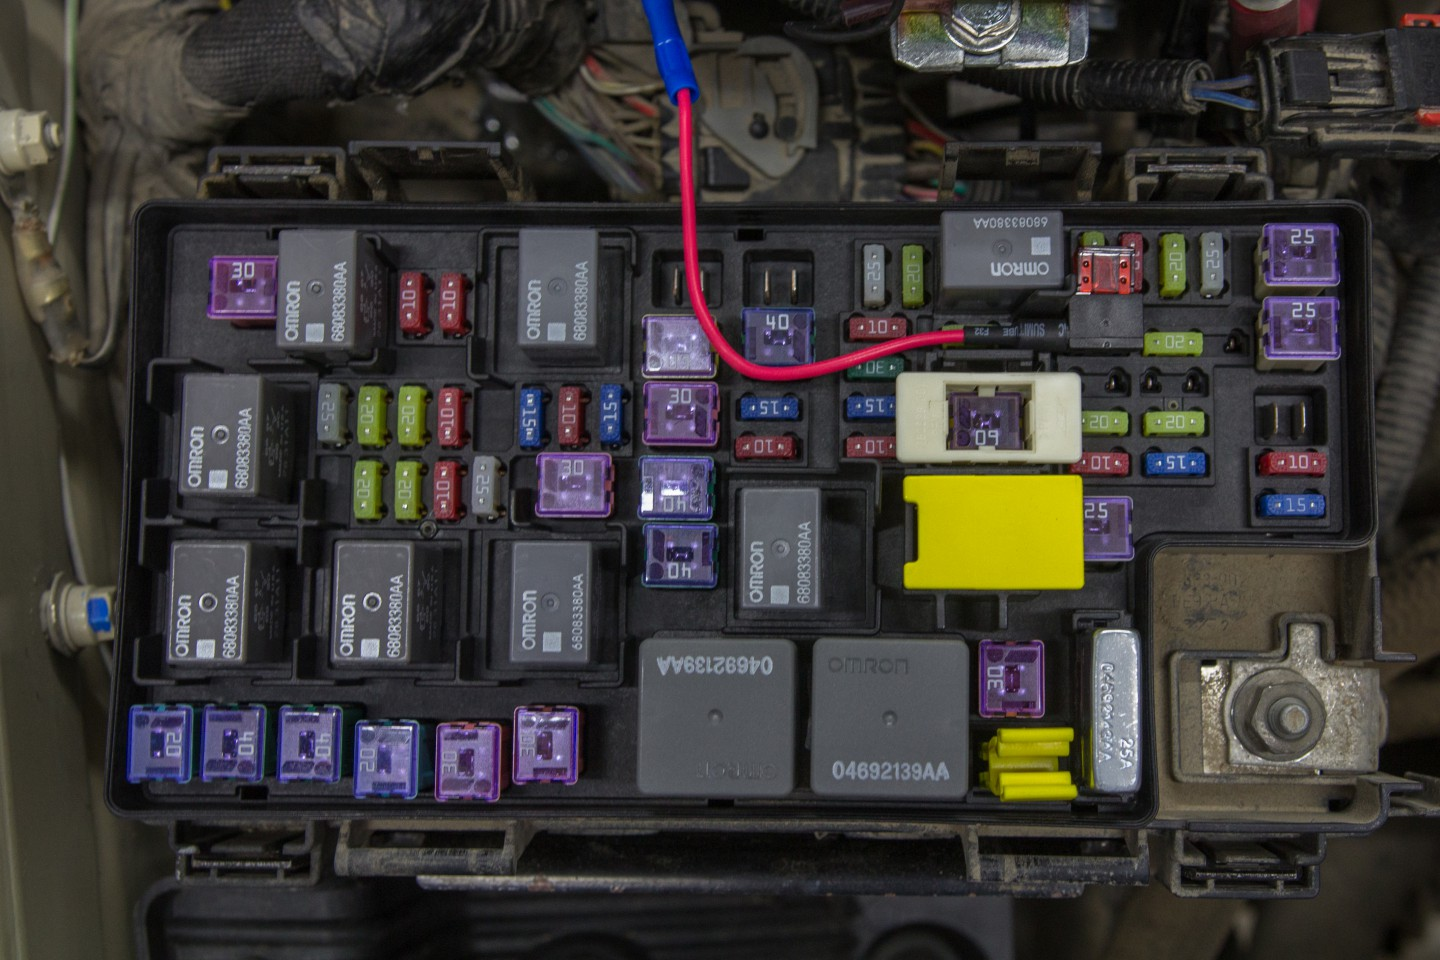 hight resolution of fuse box on jeep wrangler my wiring diagram2013 jeep wrangler fuse block diagram wiring diagram list fuse box on 2011 jeep wrangler 2013 st my wiring